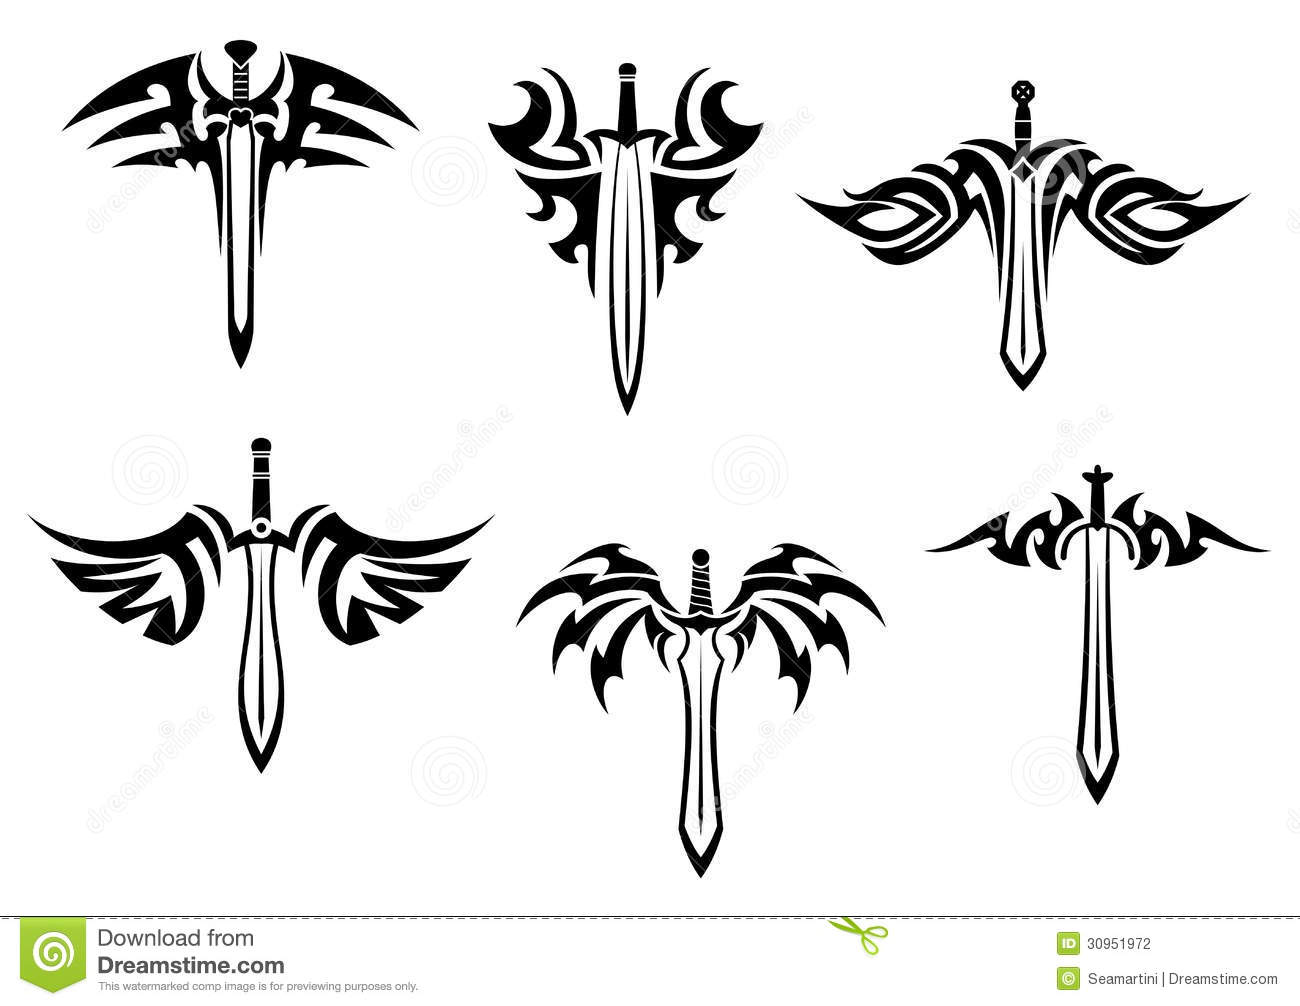 Tribal-Tattoos tribal-tattoos-swords-daggers-design-30951972